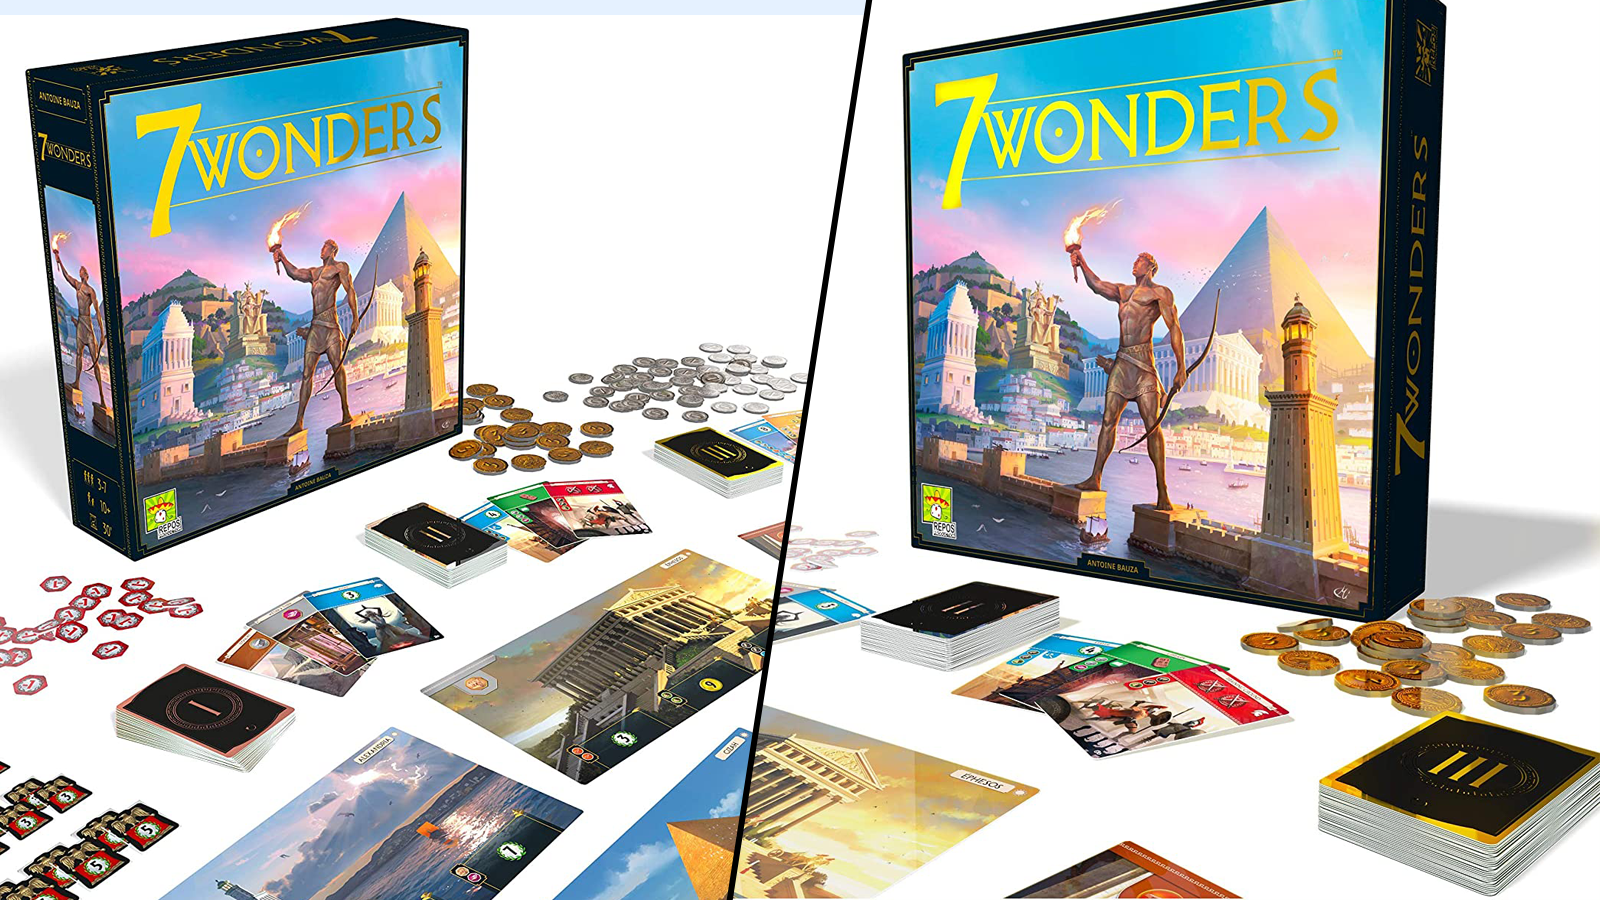 View of 7 Wonders box and various game components against a white background